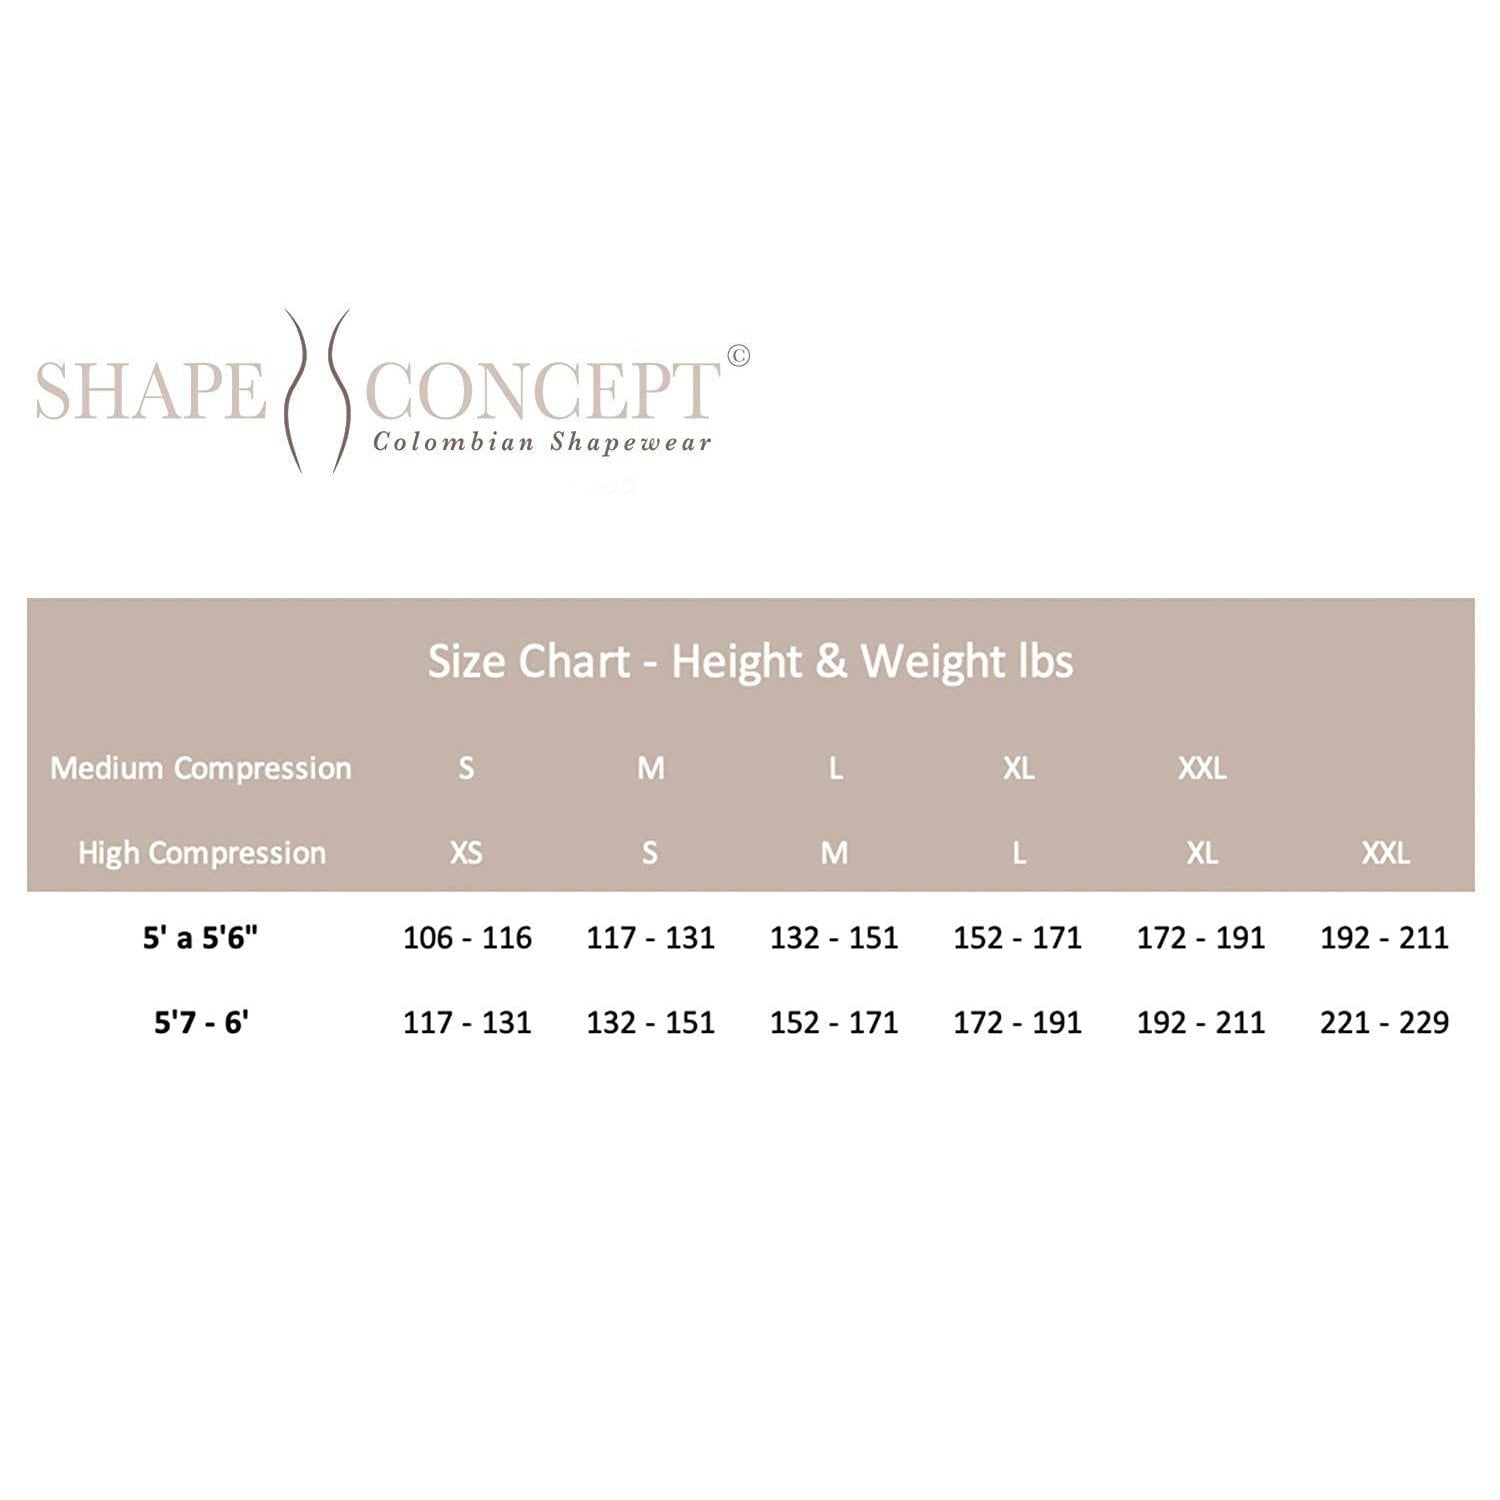 Shape Concept SCS002 Butt Lifter High-Compression Girdle Short - Fajas Colombianas | Colombian Shapewear